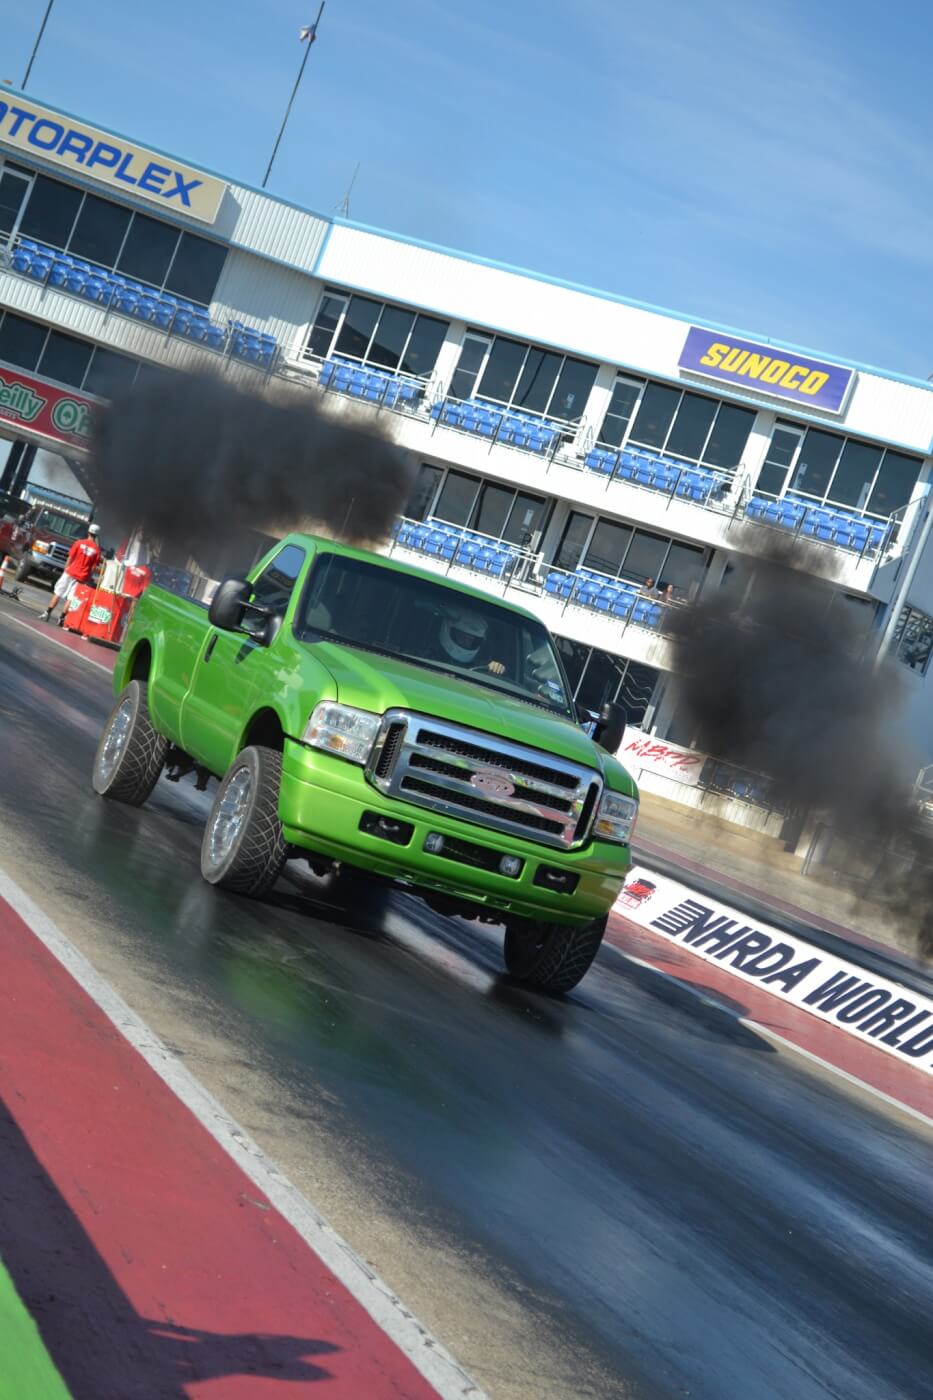 A number of Sportsman and Index Classes were available to competitors, like the 11.90 Super Diesel and 10.90 index classes. This bright green Ford made it a number of rounds in the 11.90 class, which is usually dominated by Dodges and GMs.